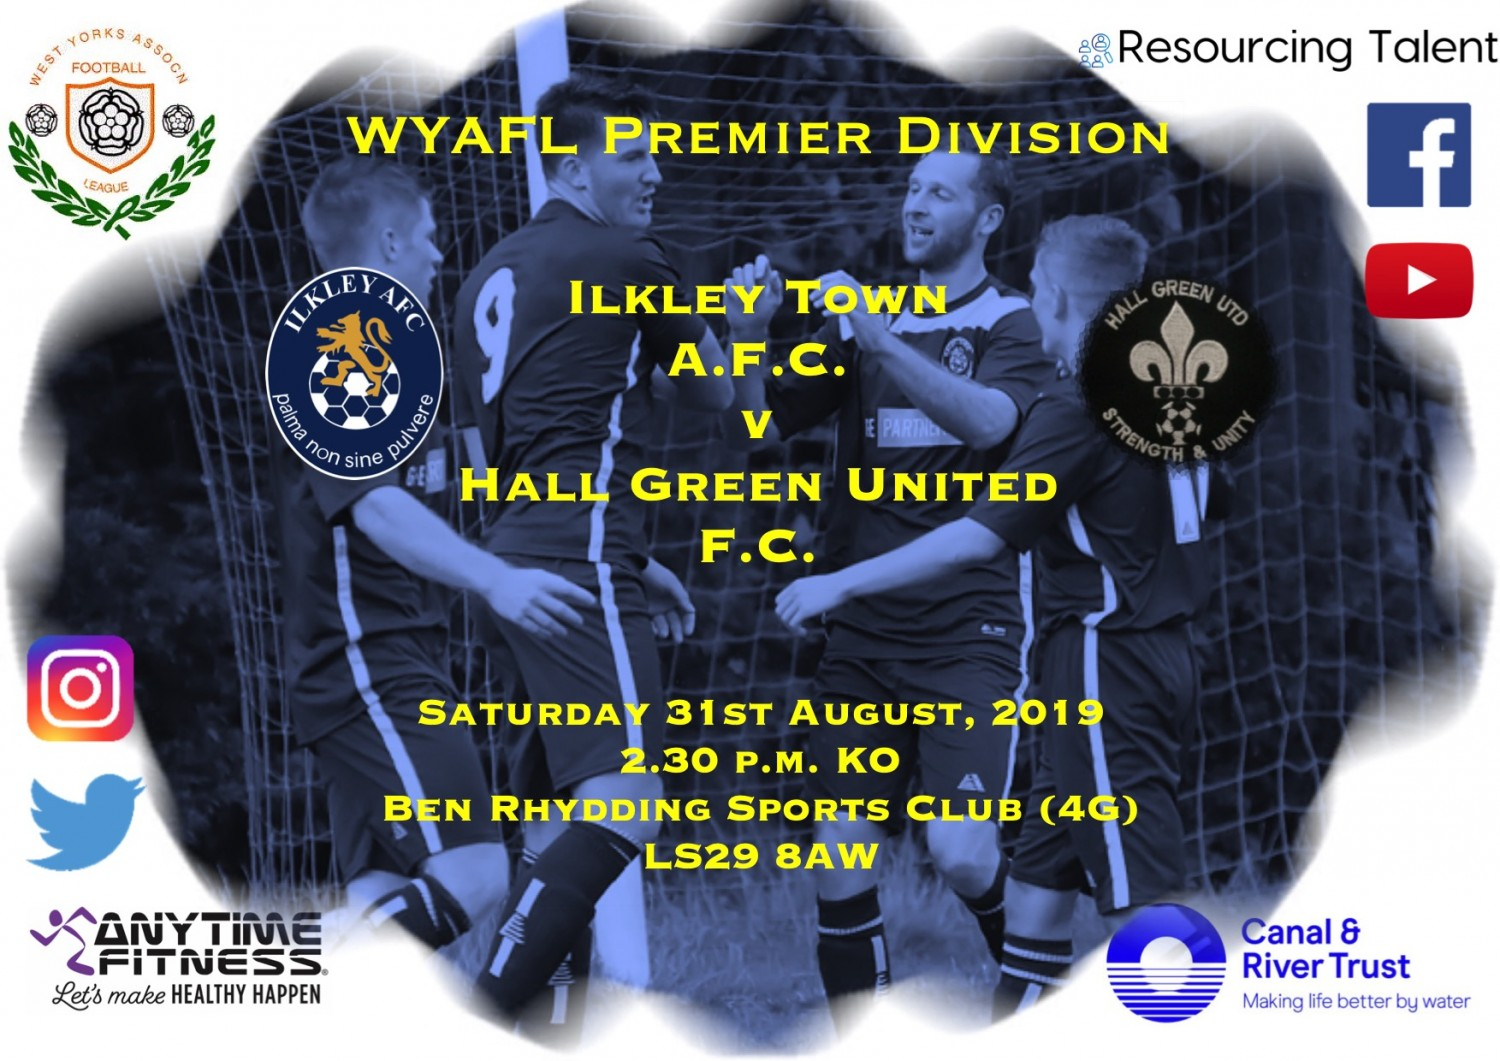 Match Preview: Ilkley Town v Hall Green